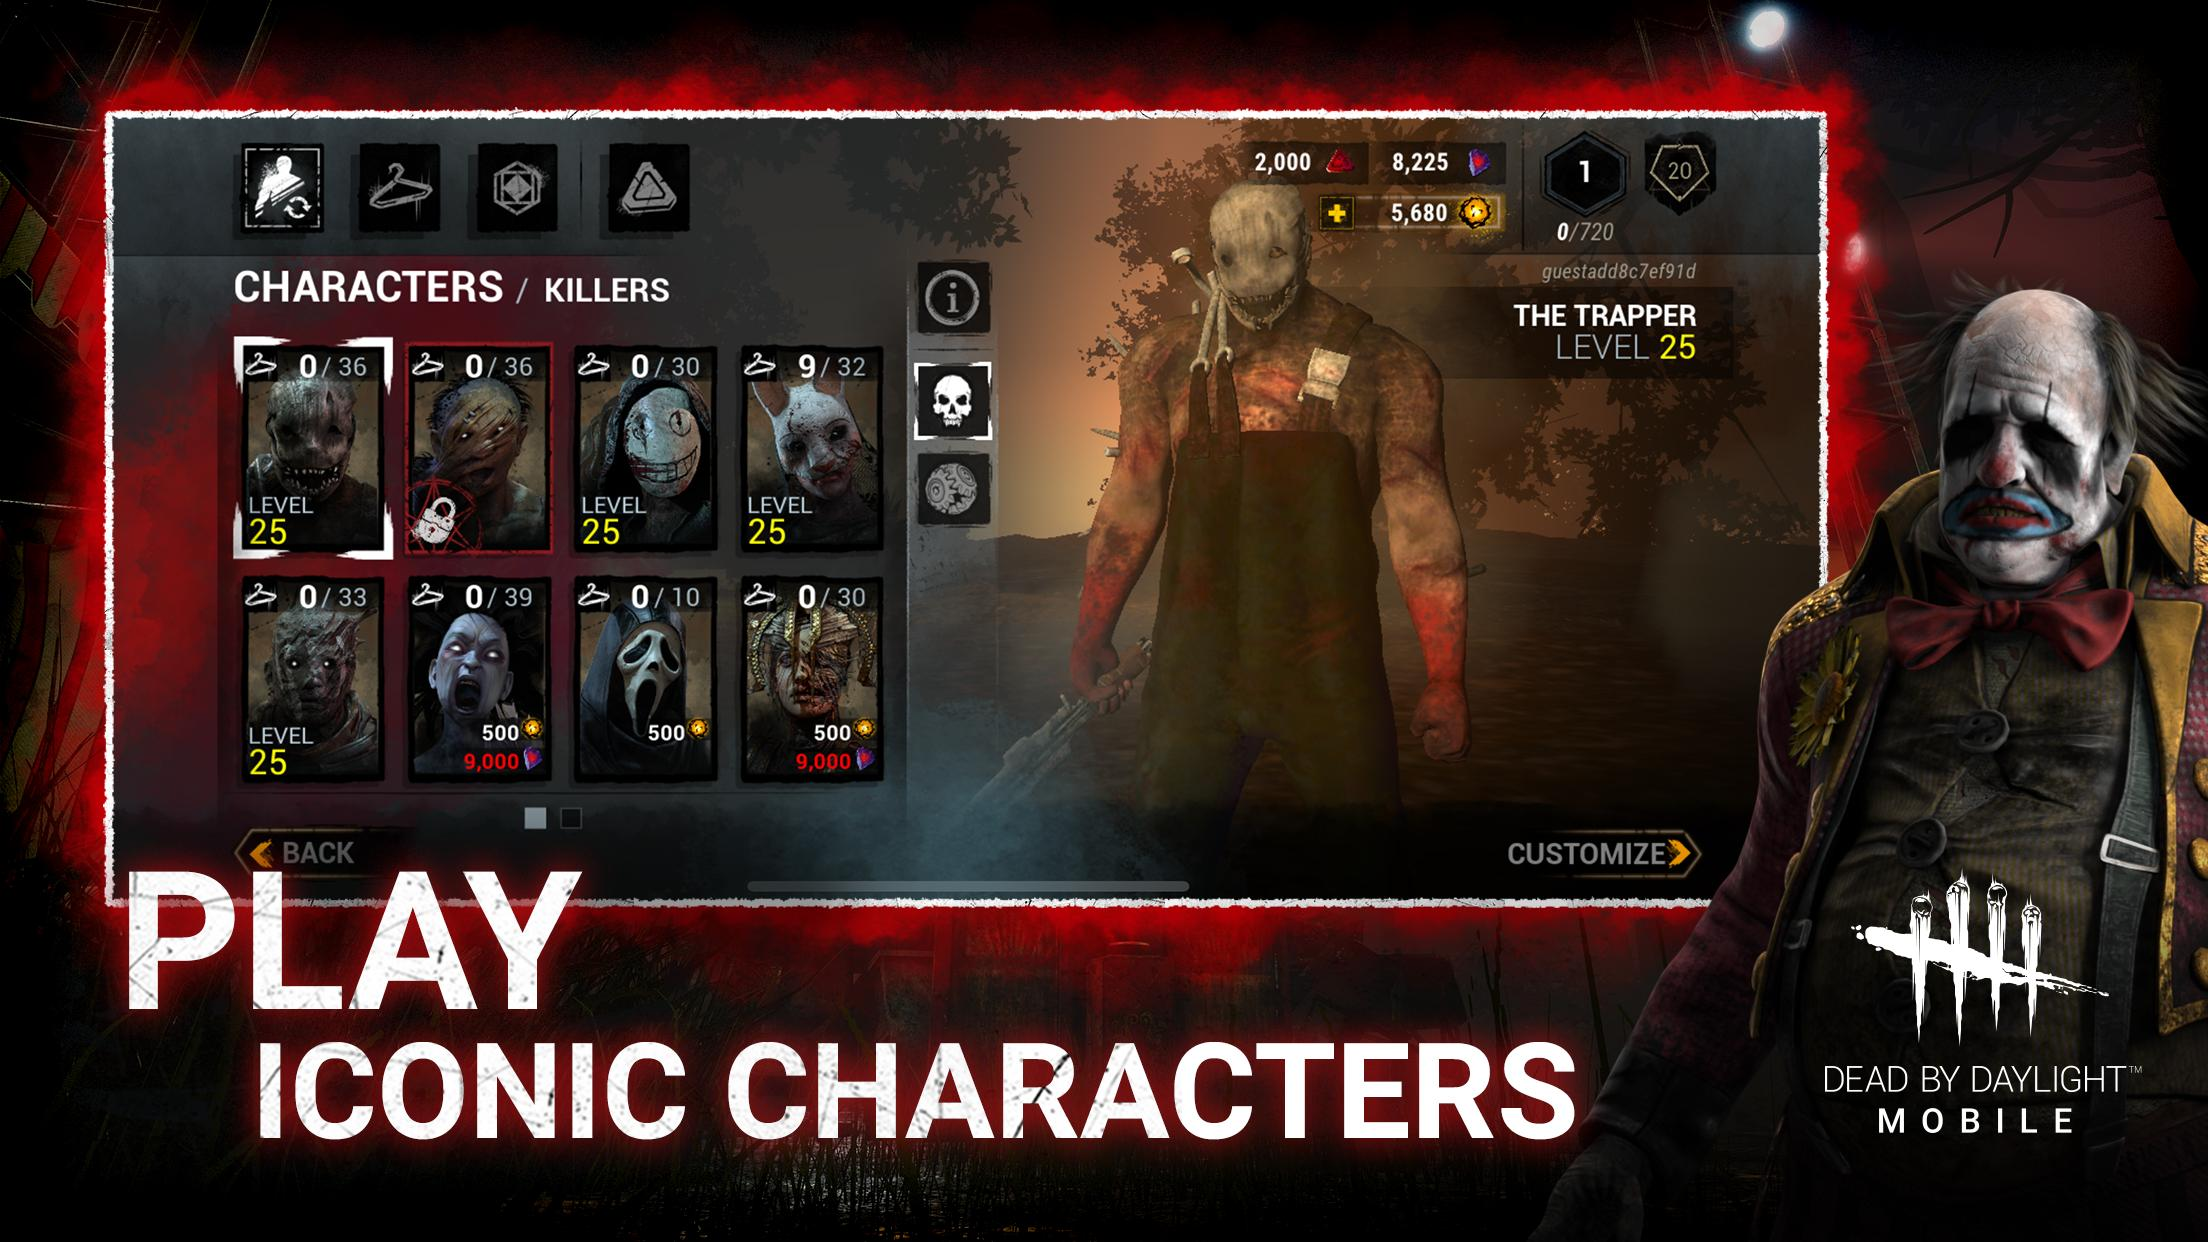 Dead by Daylight Apk iOS Latest Version Free Download